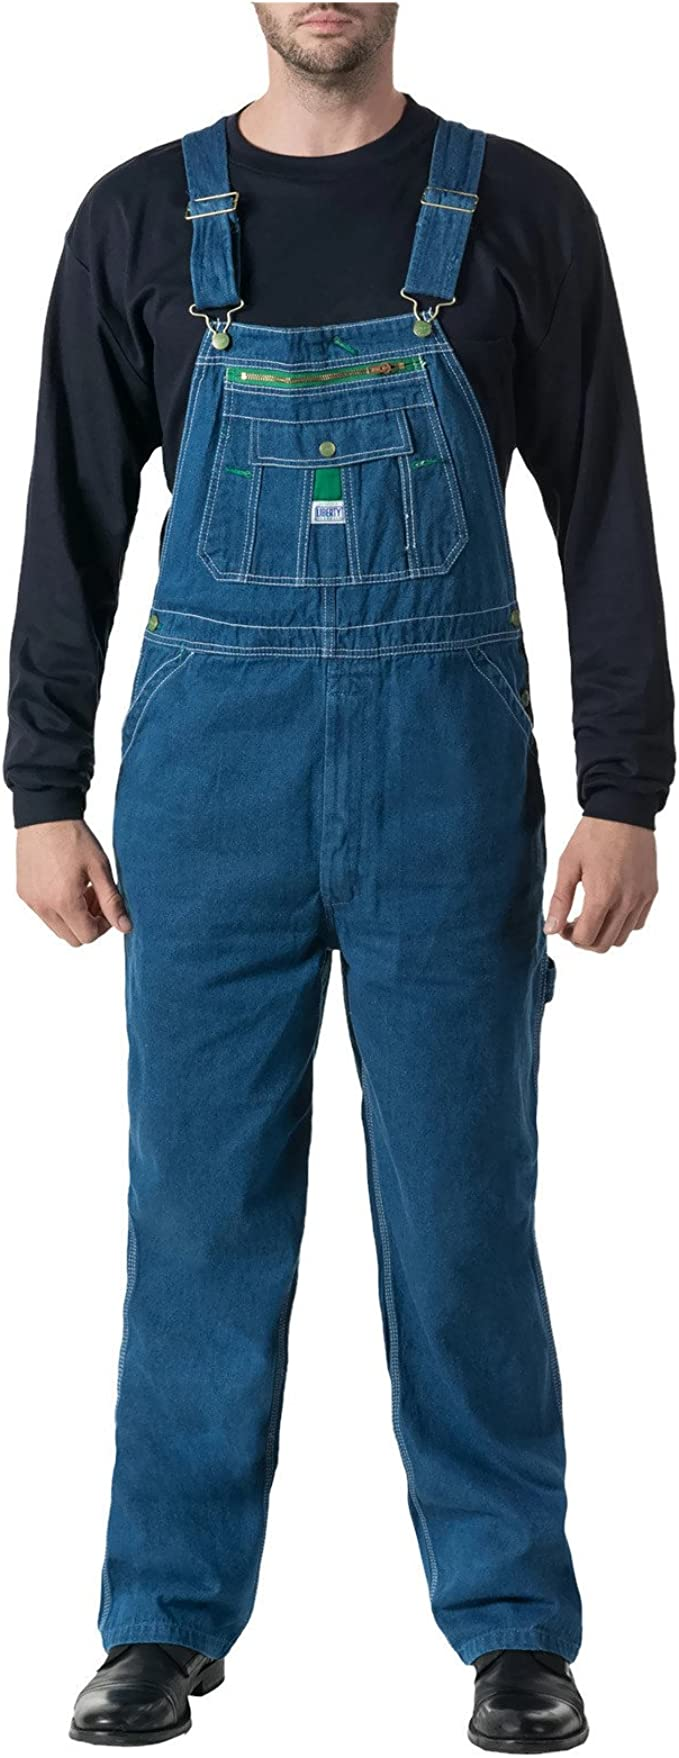 MOV14006 Liberty Relaxed Fit Stone Washed Bib Overalls